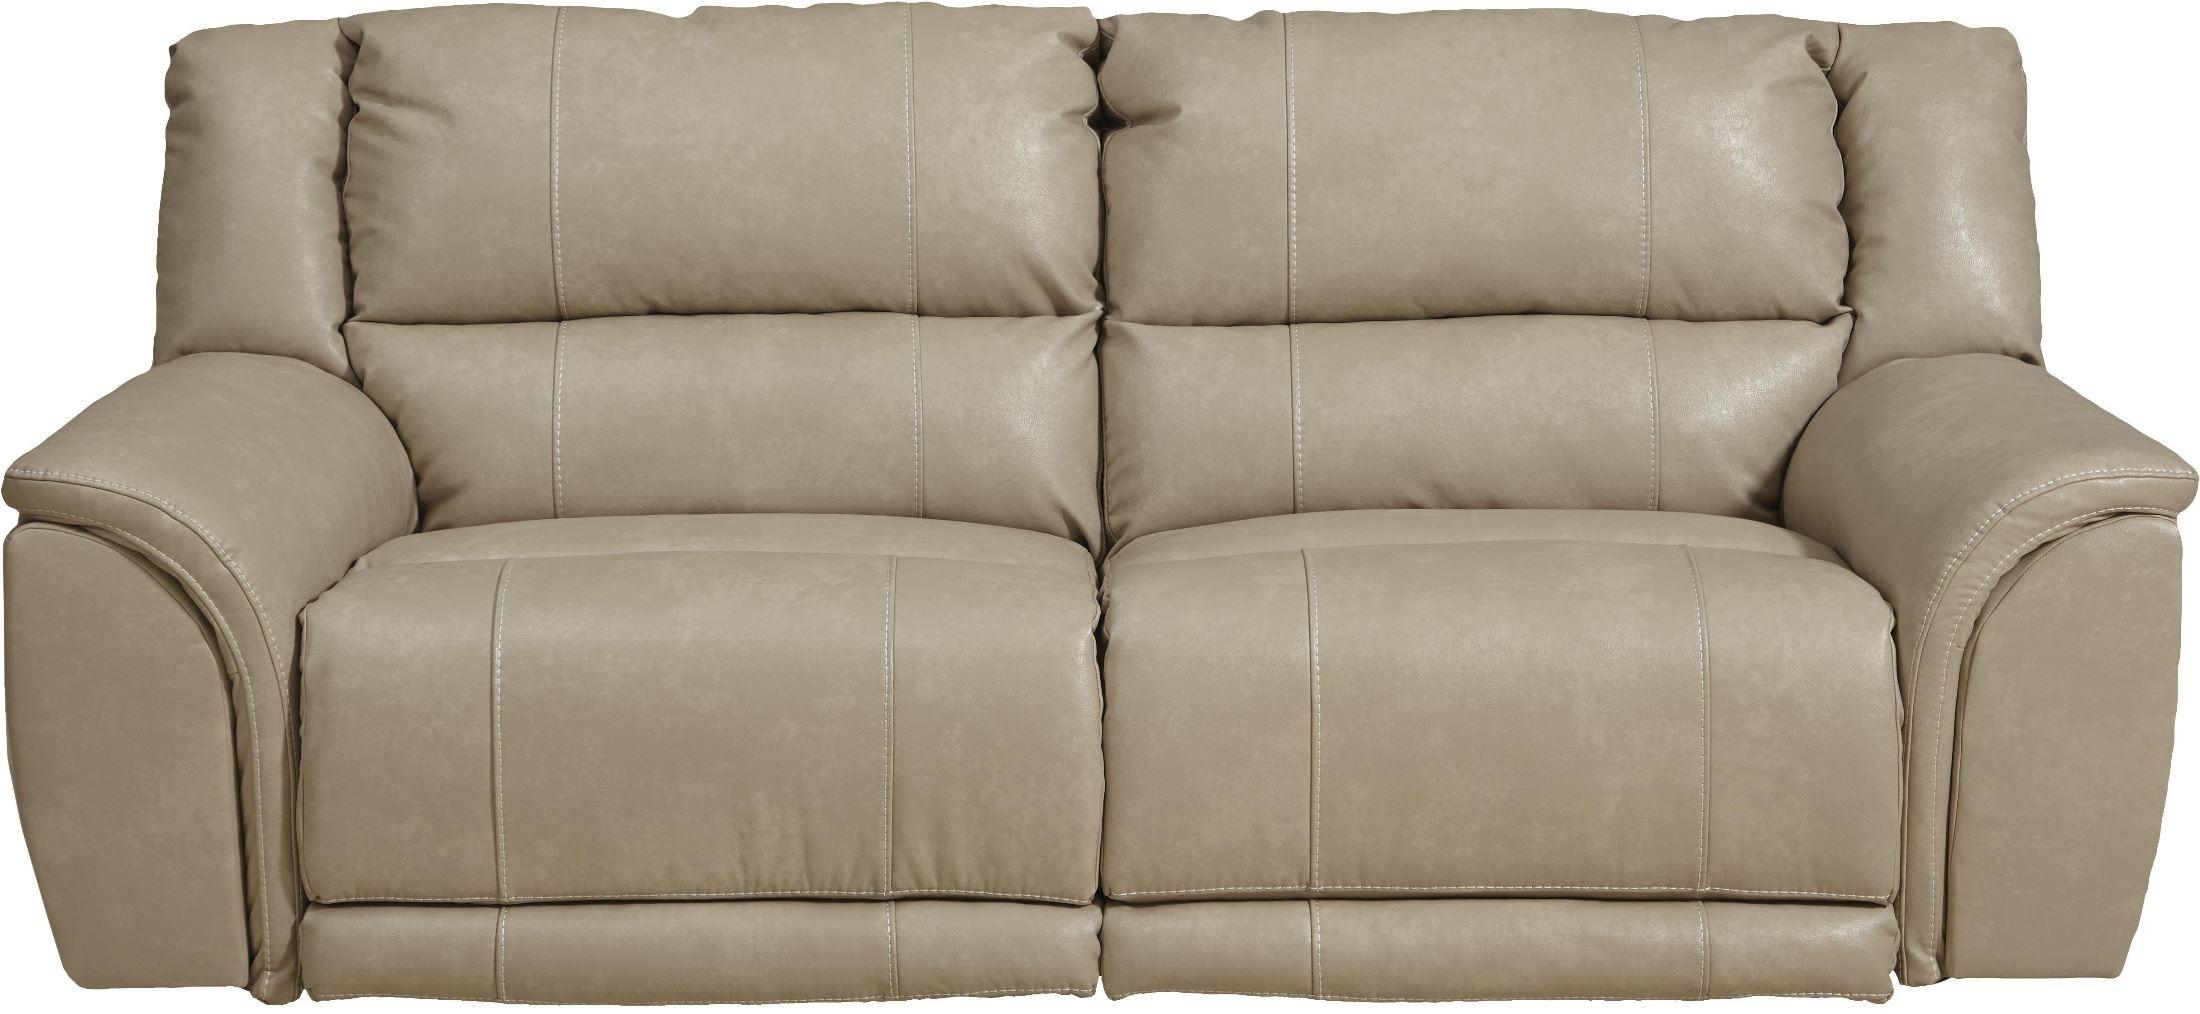 Carmine Pebble Power Reclining Living Room Set From Catnapper For Catnapper Reclining Sofas (Image 4 of 20)